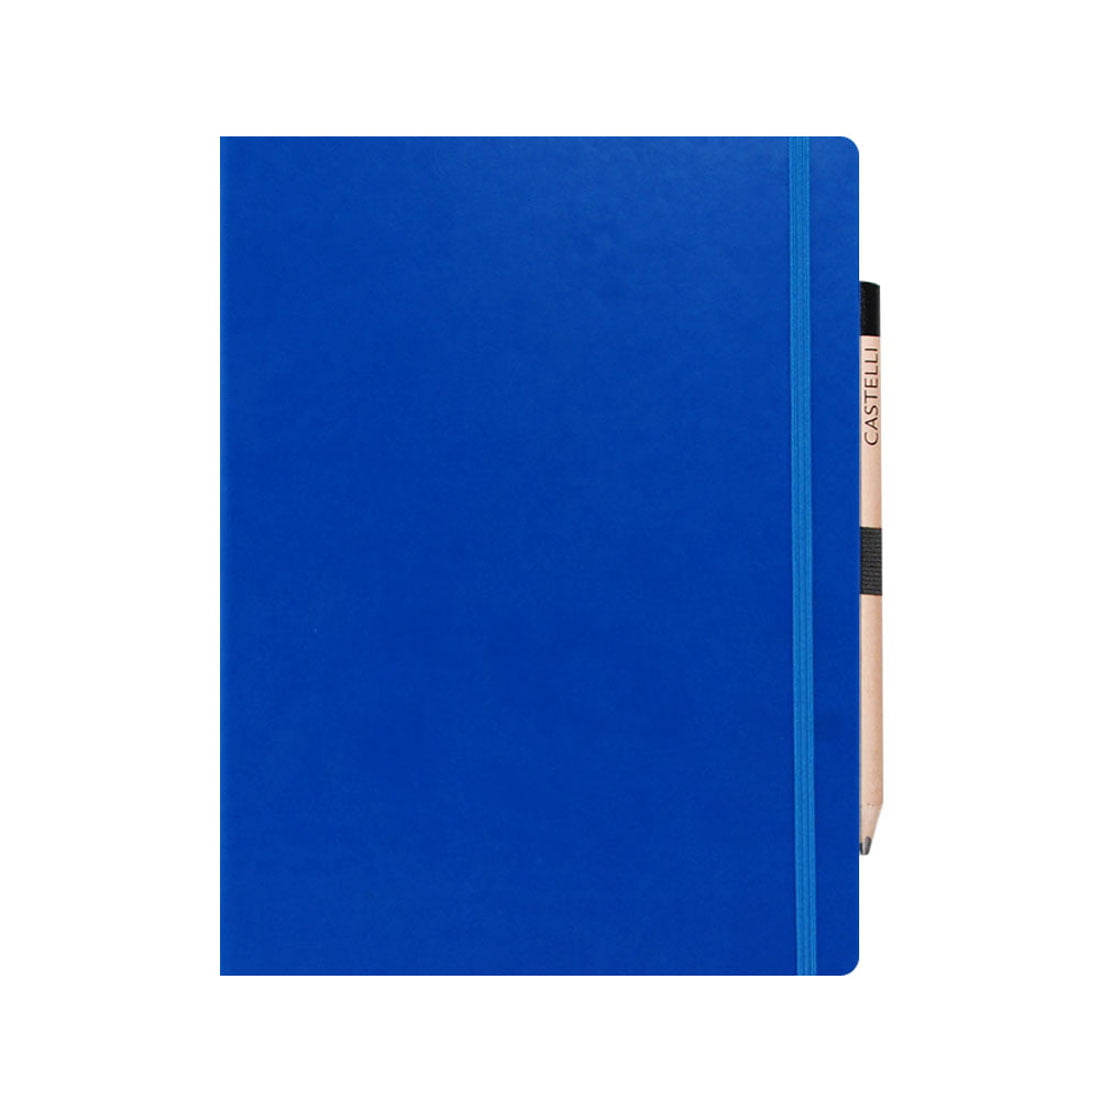 French blue large note book with rounded corners, ribbon marker.